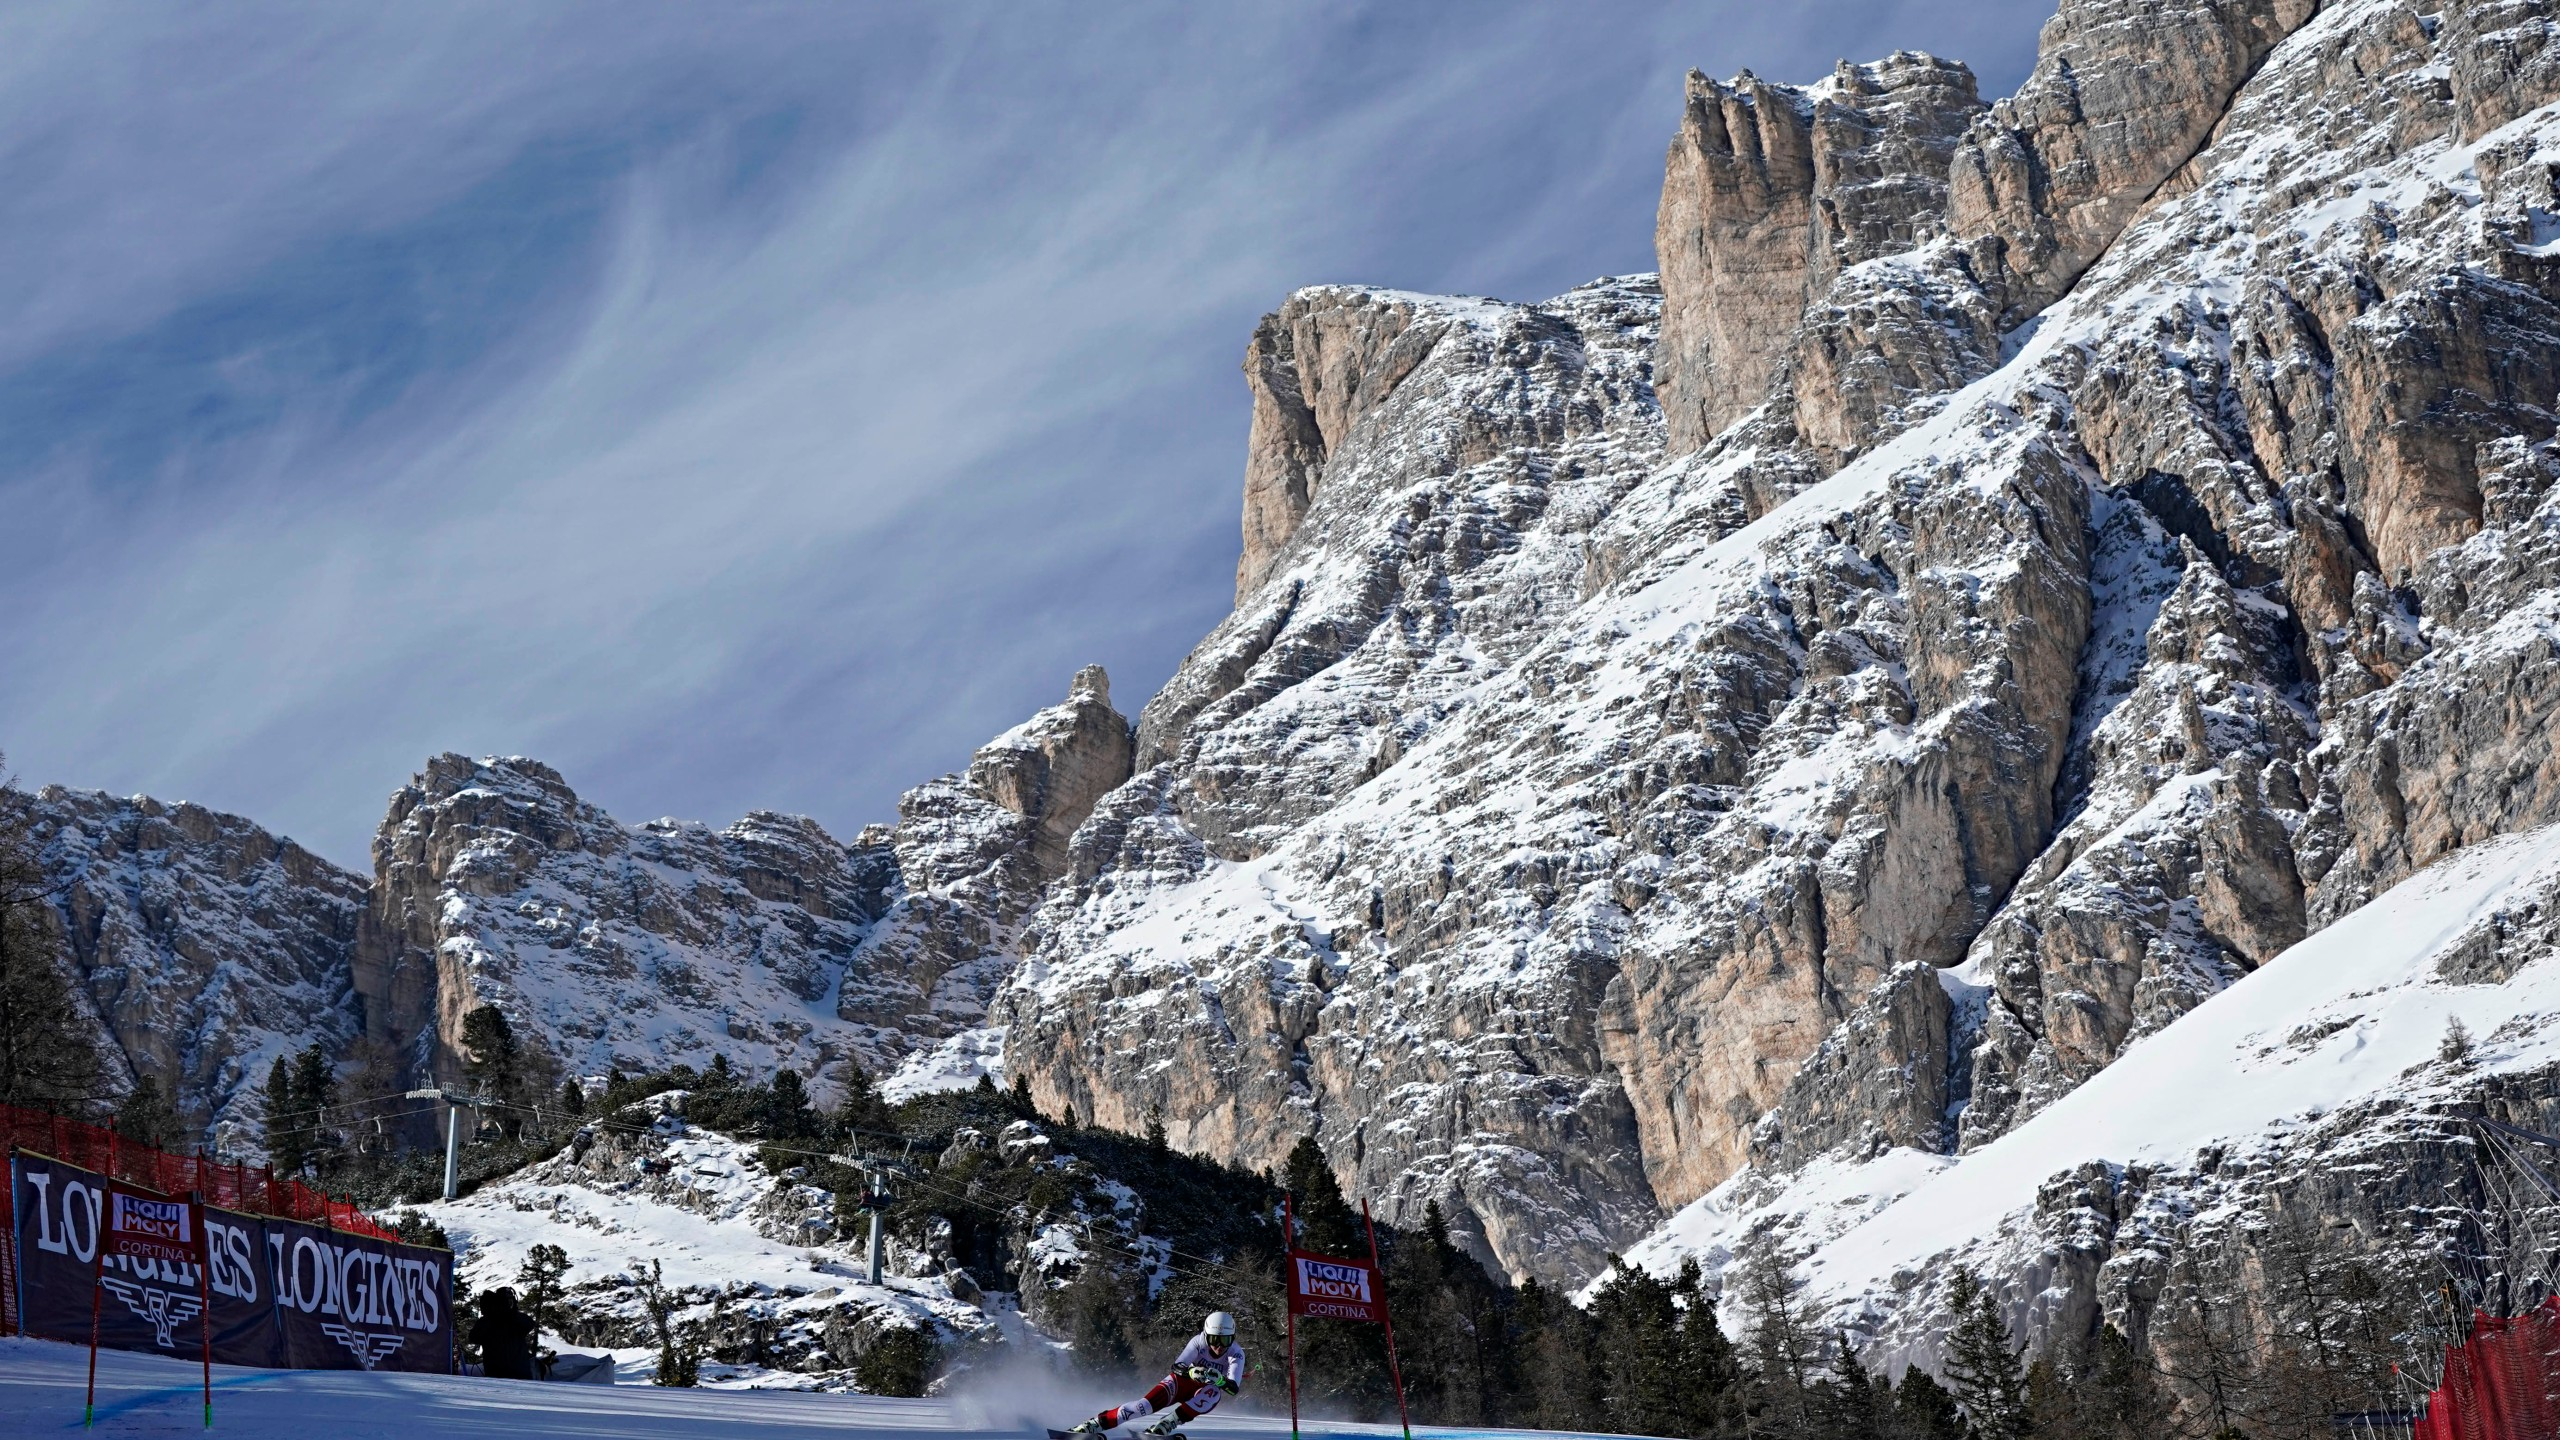 A general view during the Audi FIS Alpine Ski World Cup Women's Super G on Jan. 20, 2019, in Cortina d'Ampezzo Italy. (Credit: Francis Bompard/Agence Zoom/Getty Images)